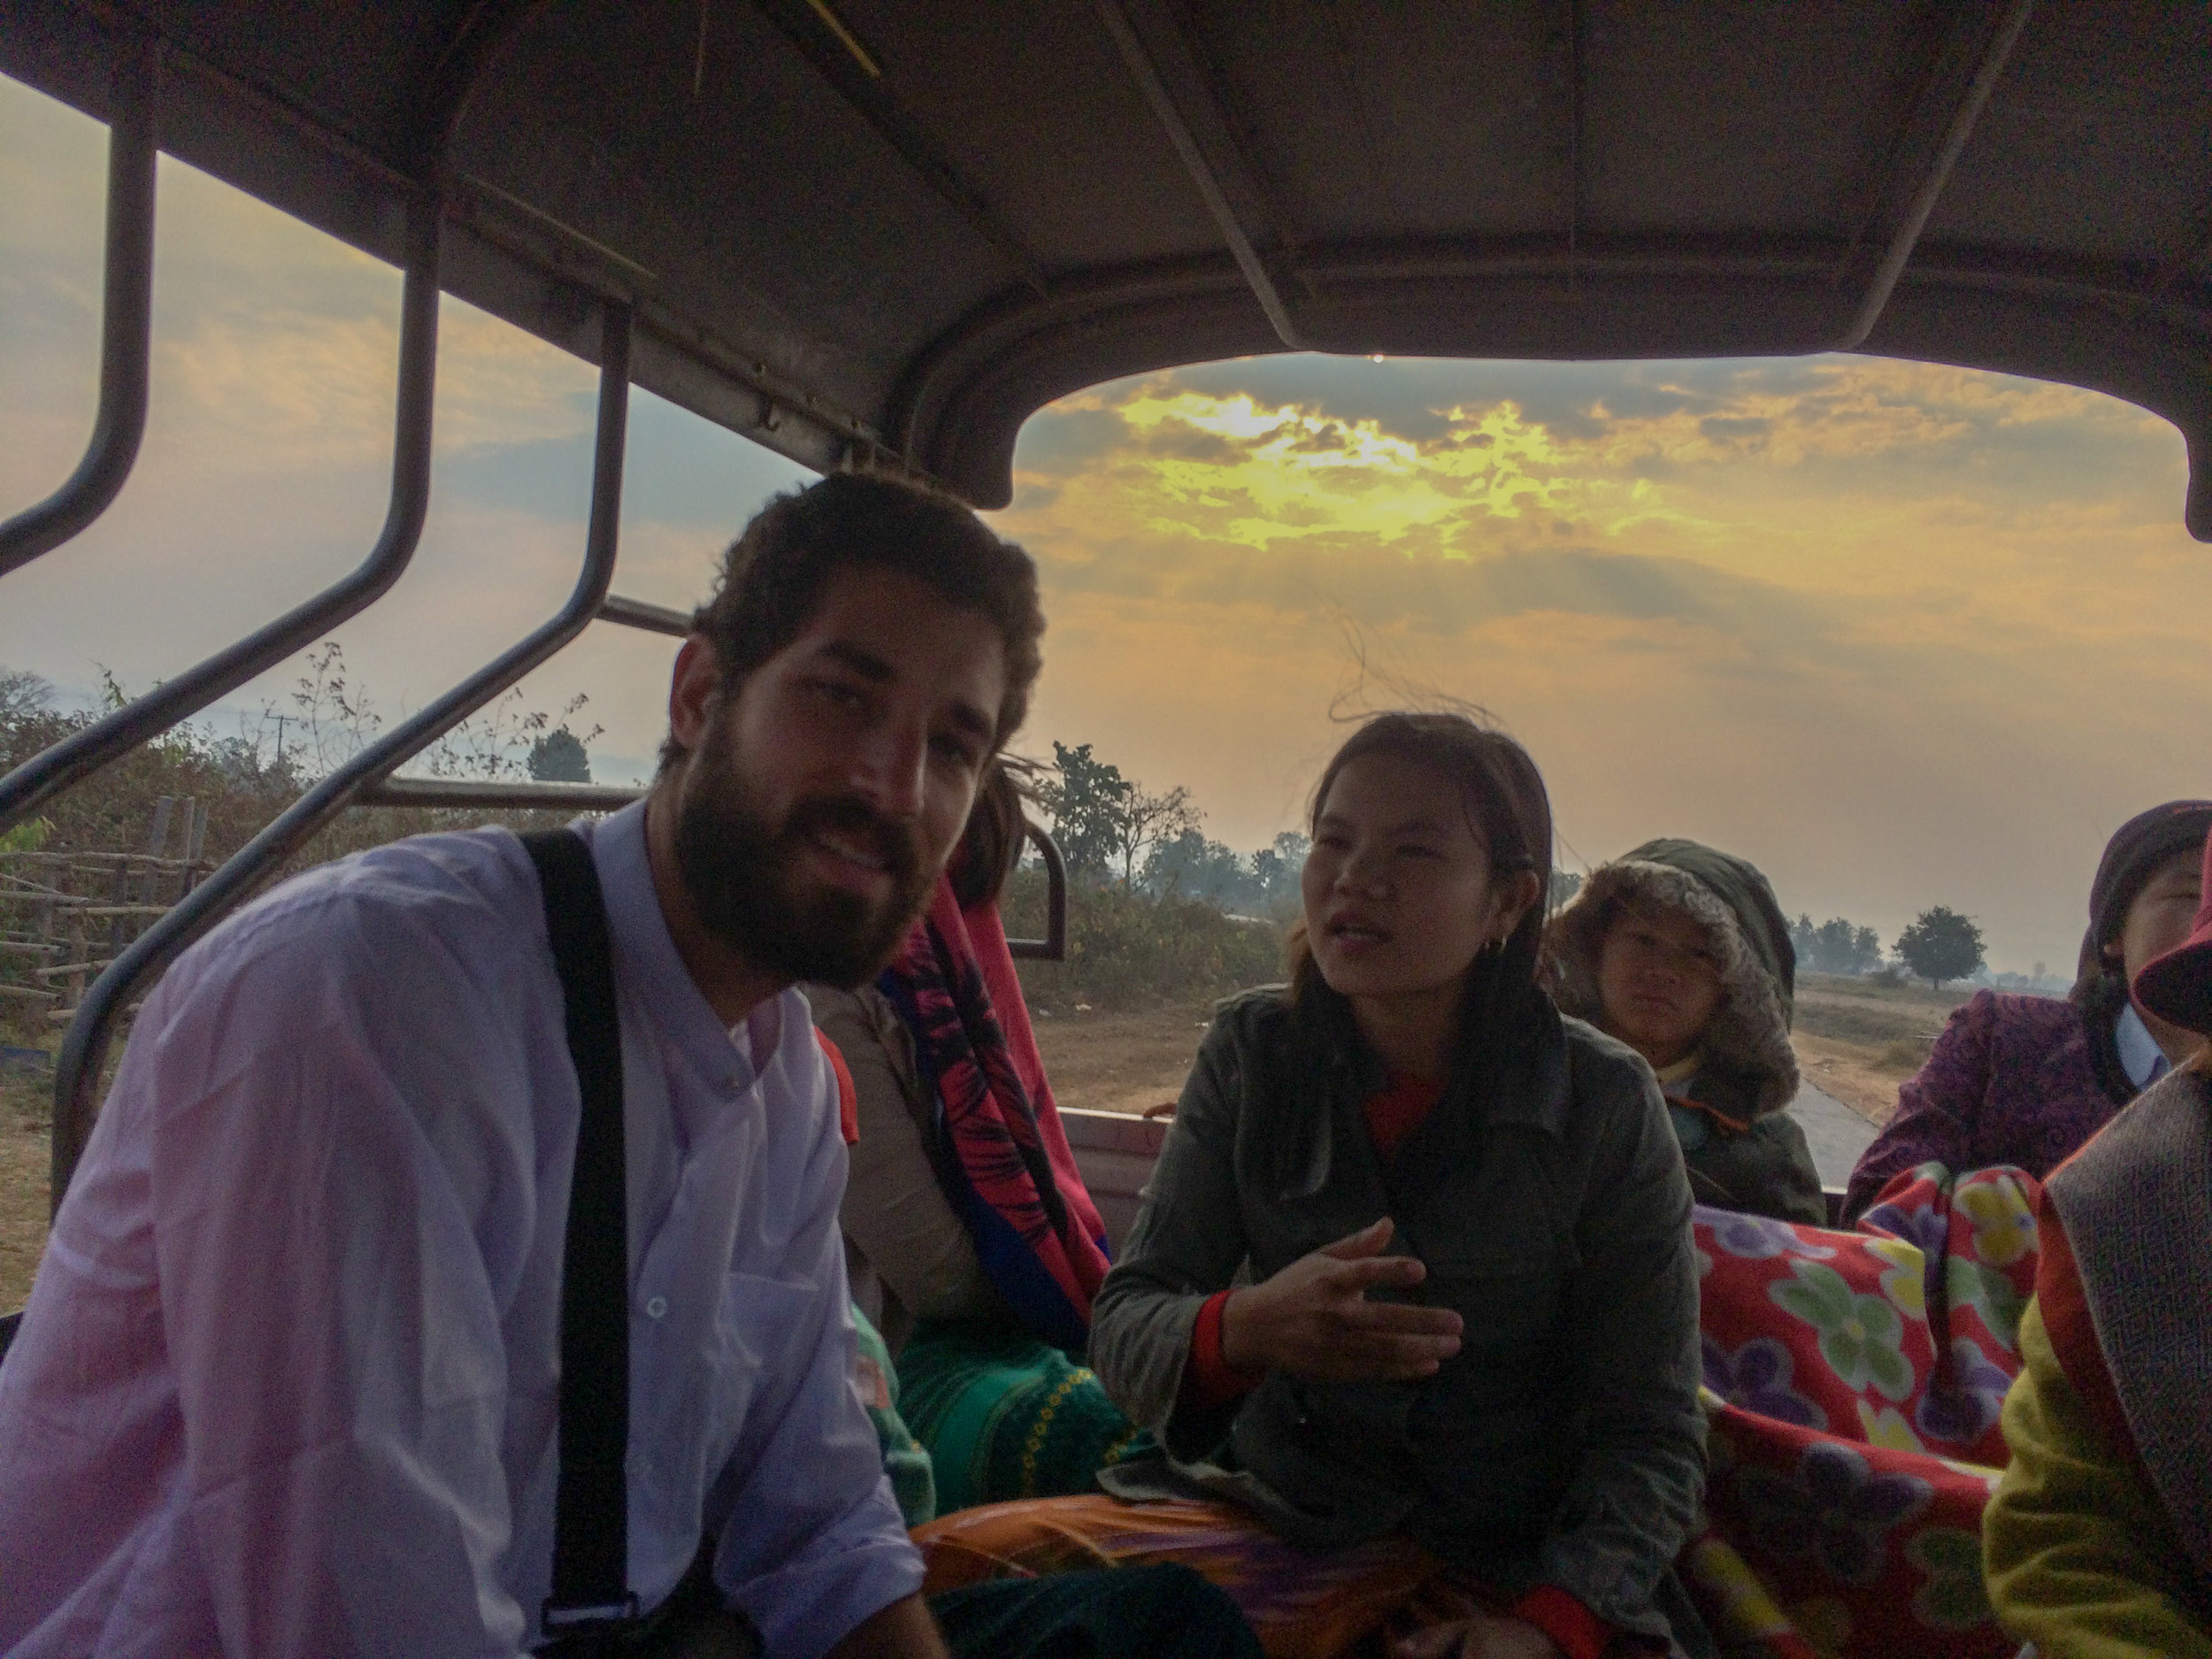 Riding in the back of a pick-up with a family in Myanmar for a two hour ride along unpaved roads.